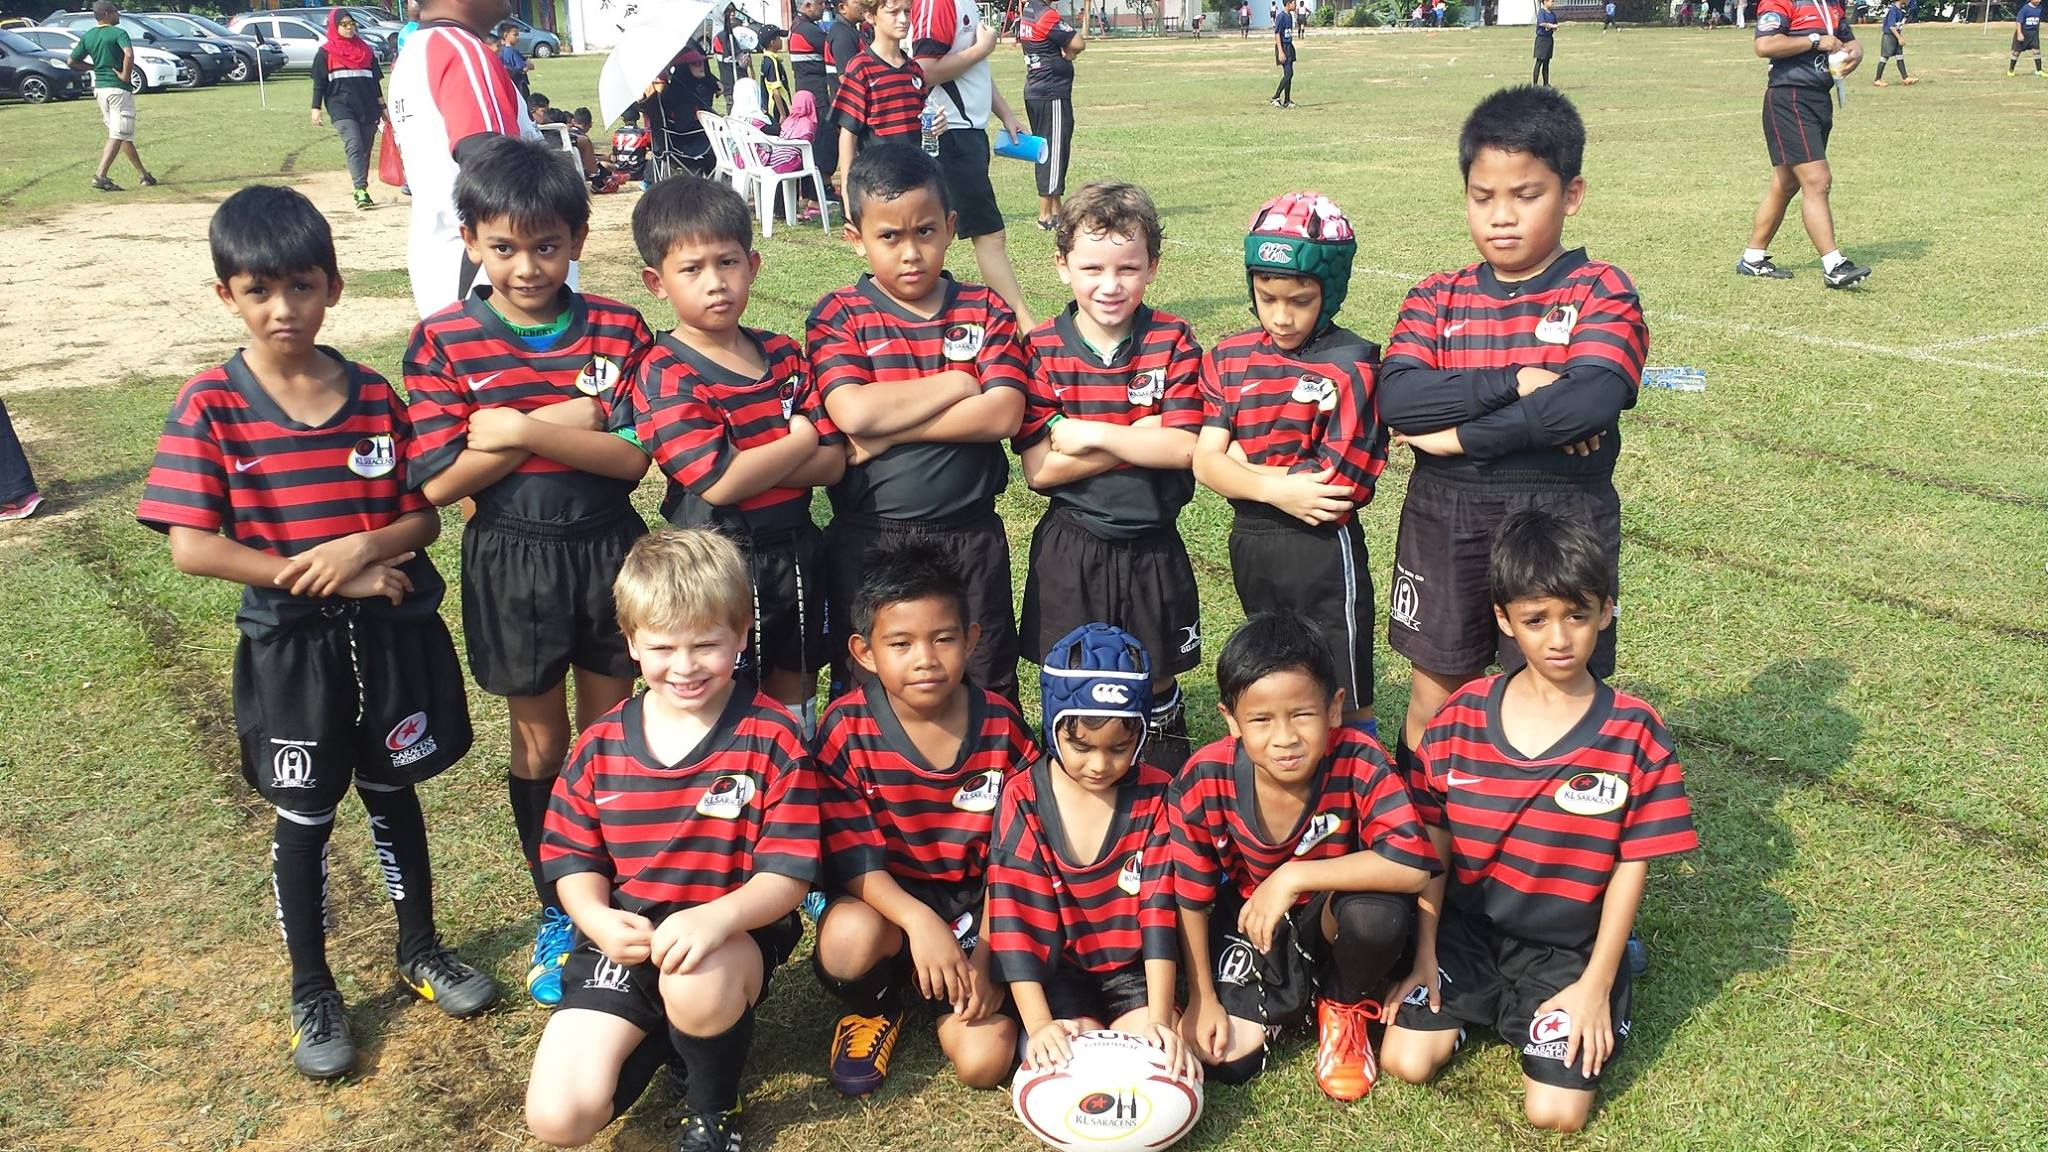 KL Saracens Under 8 at D'Rhinos 10s 2014